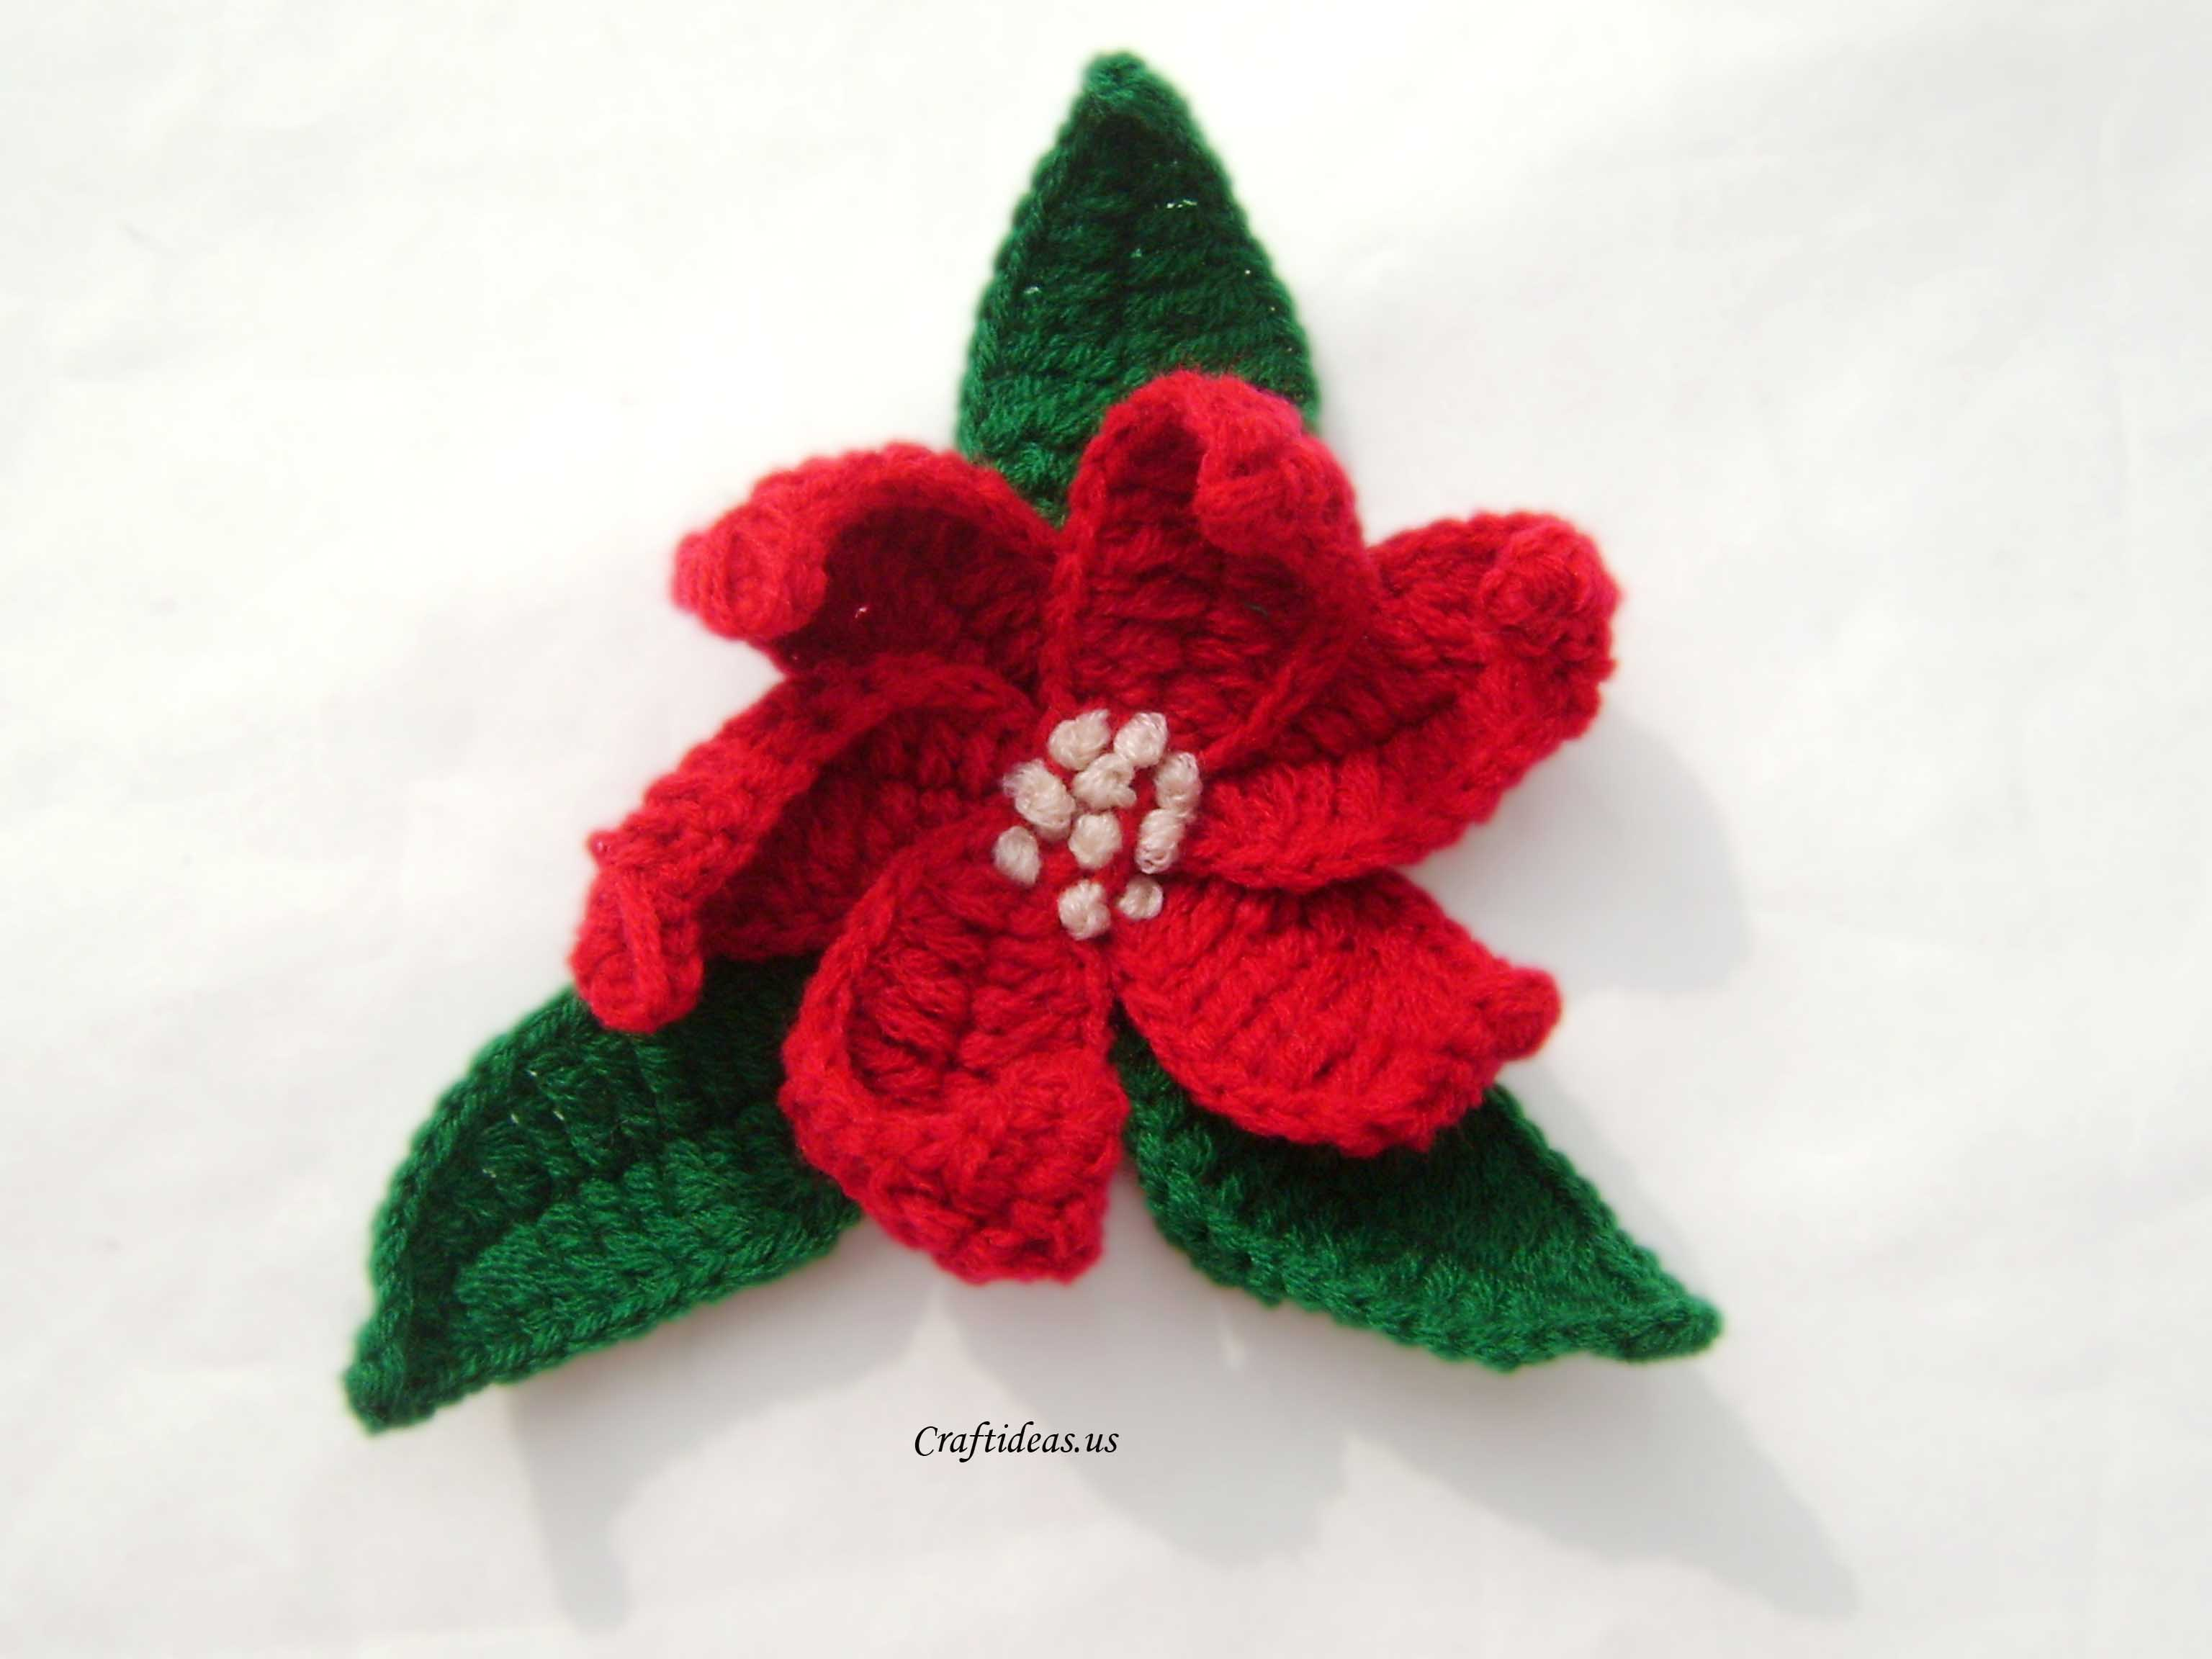 Christmas craft ideas: Crochet Poinsettias - Craft Ideas